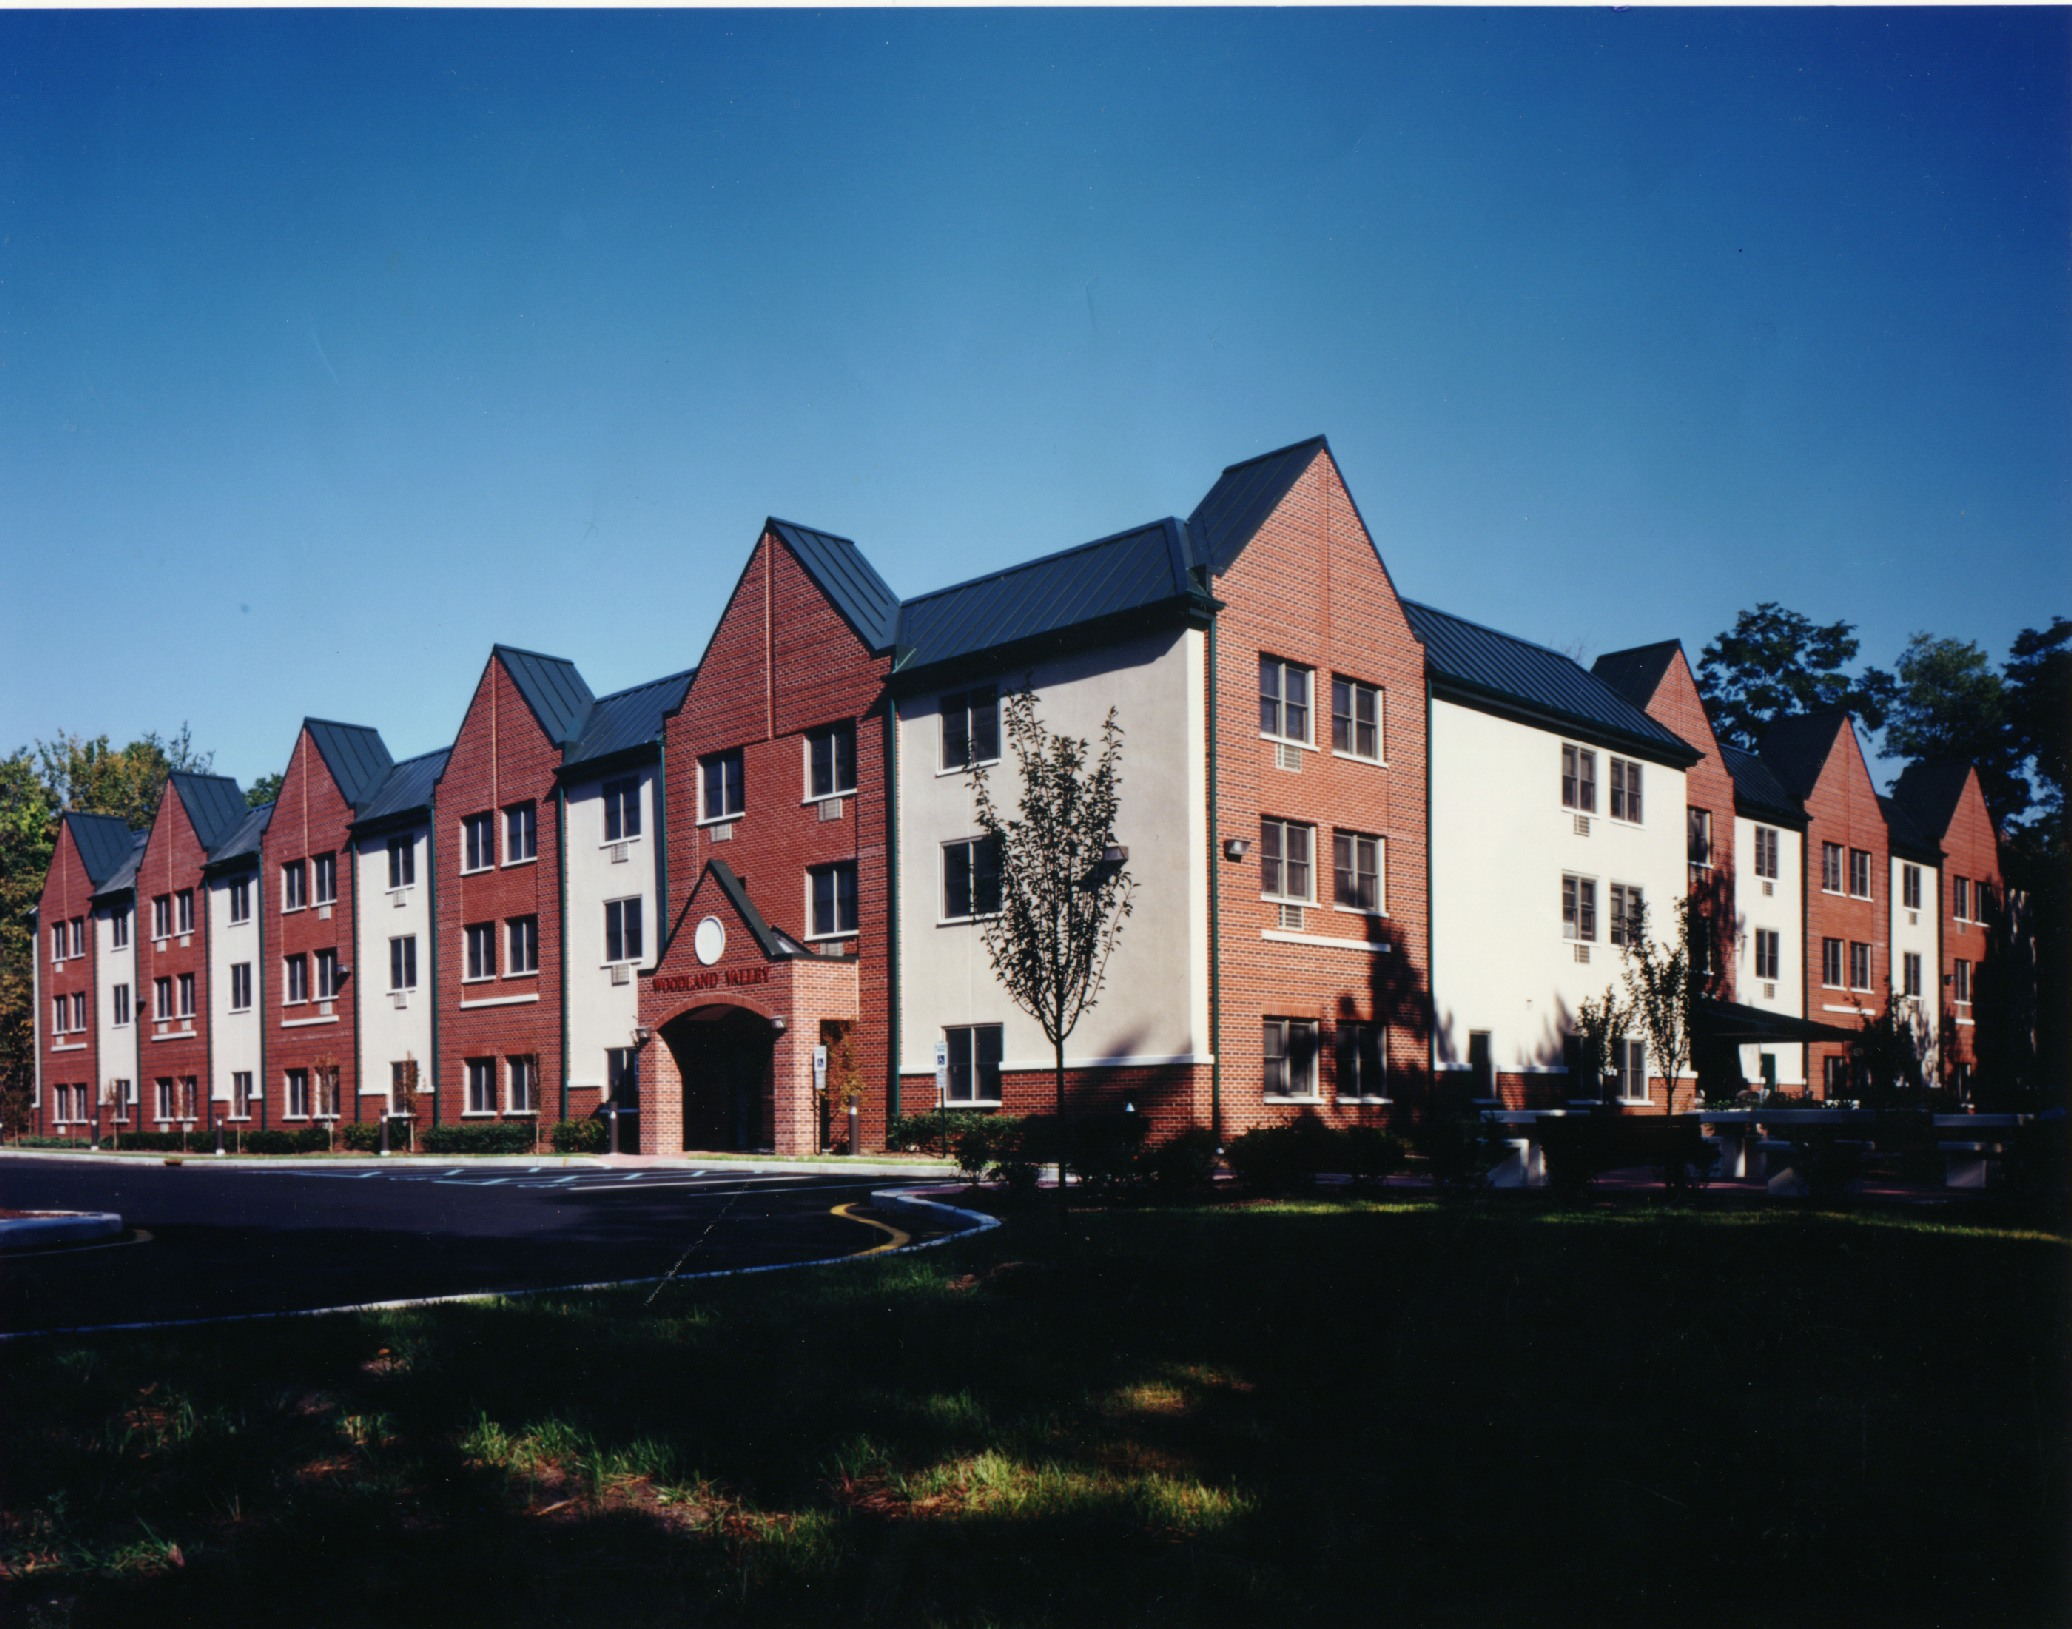 Woodland Valley - Affordable Senior Housing